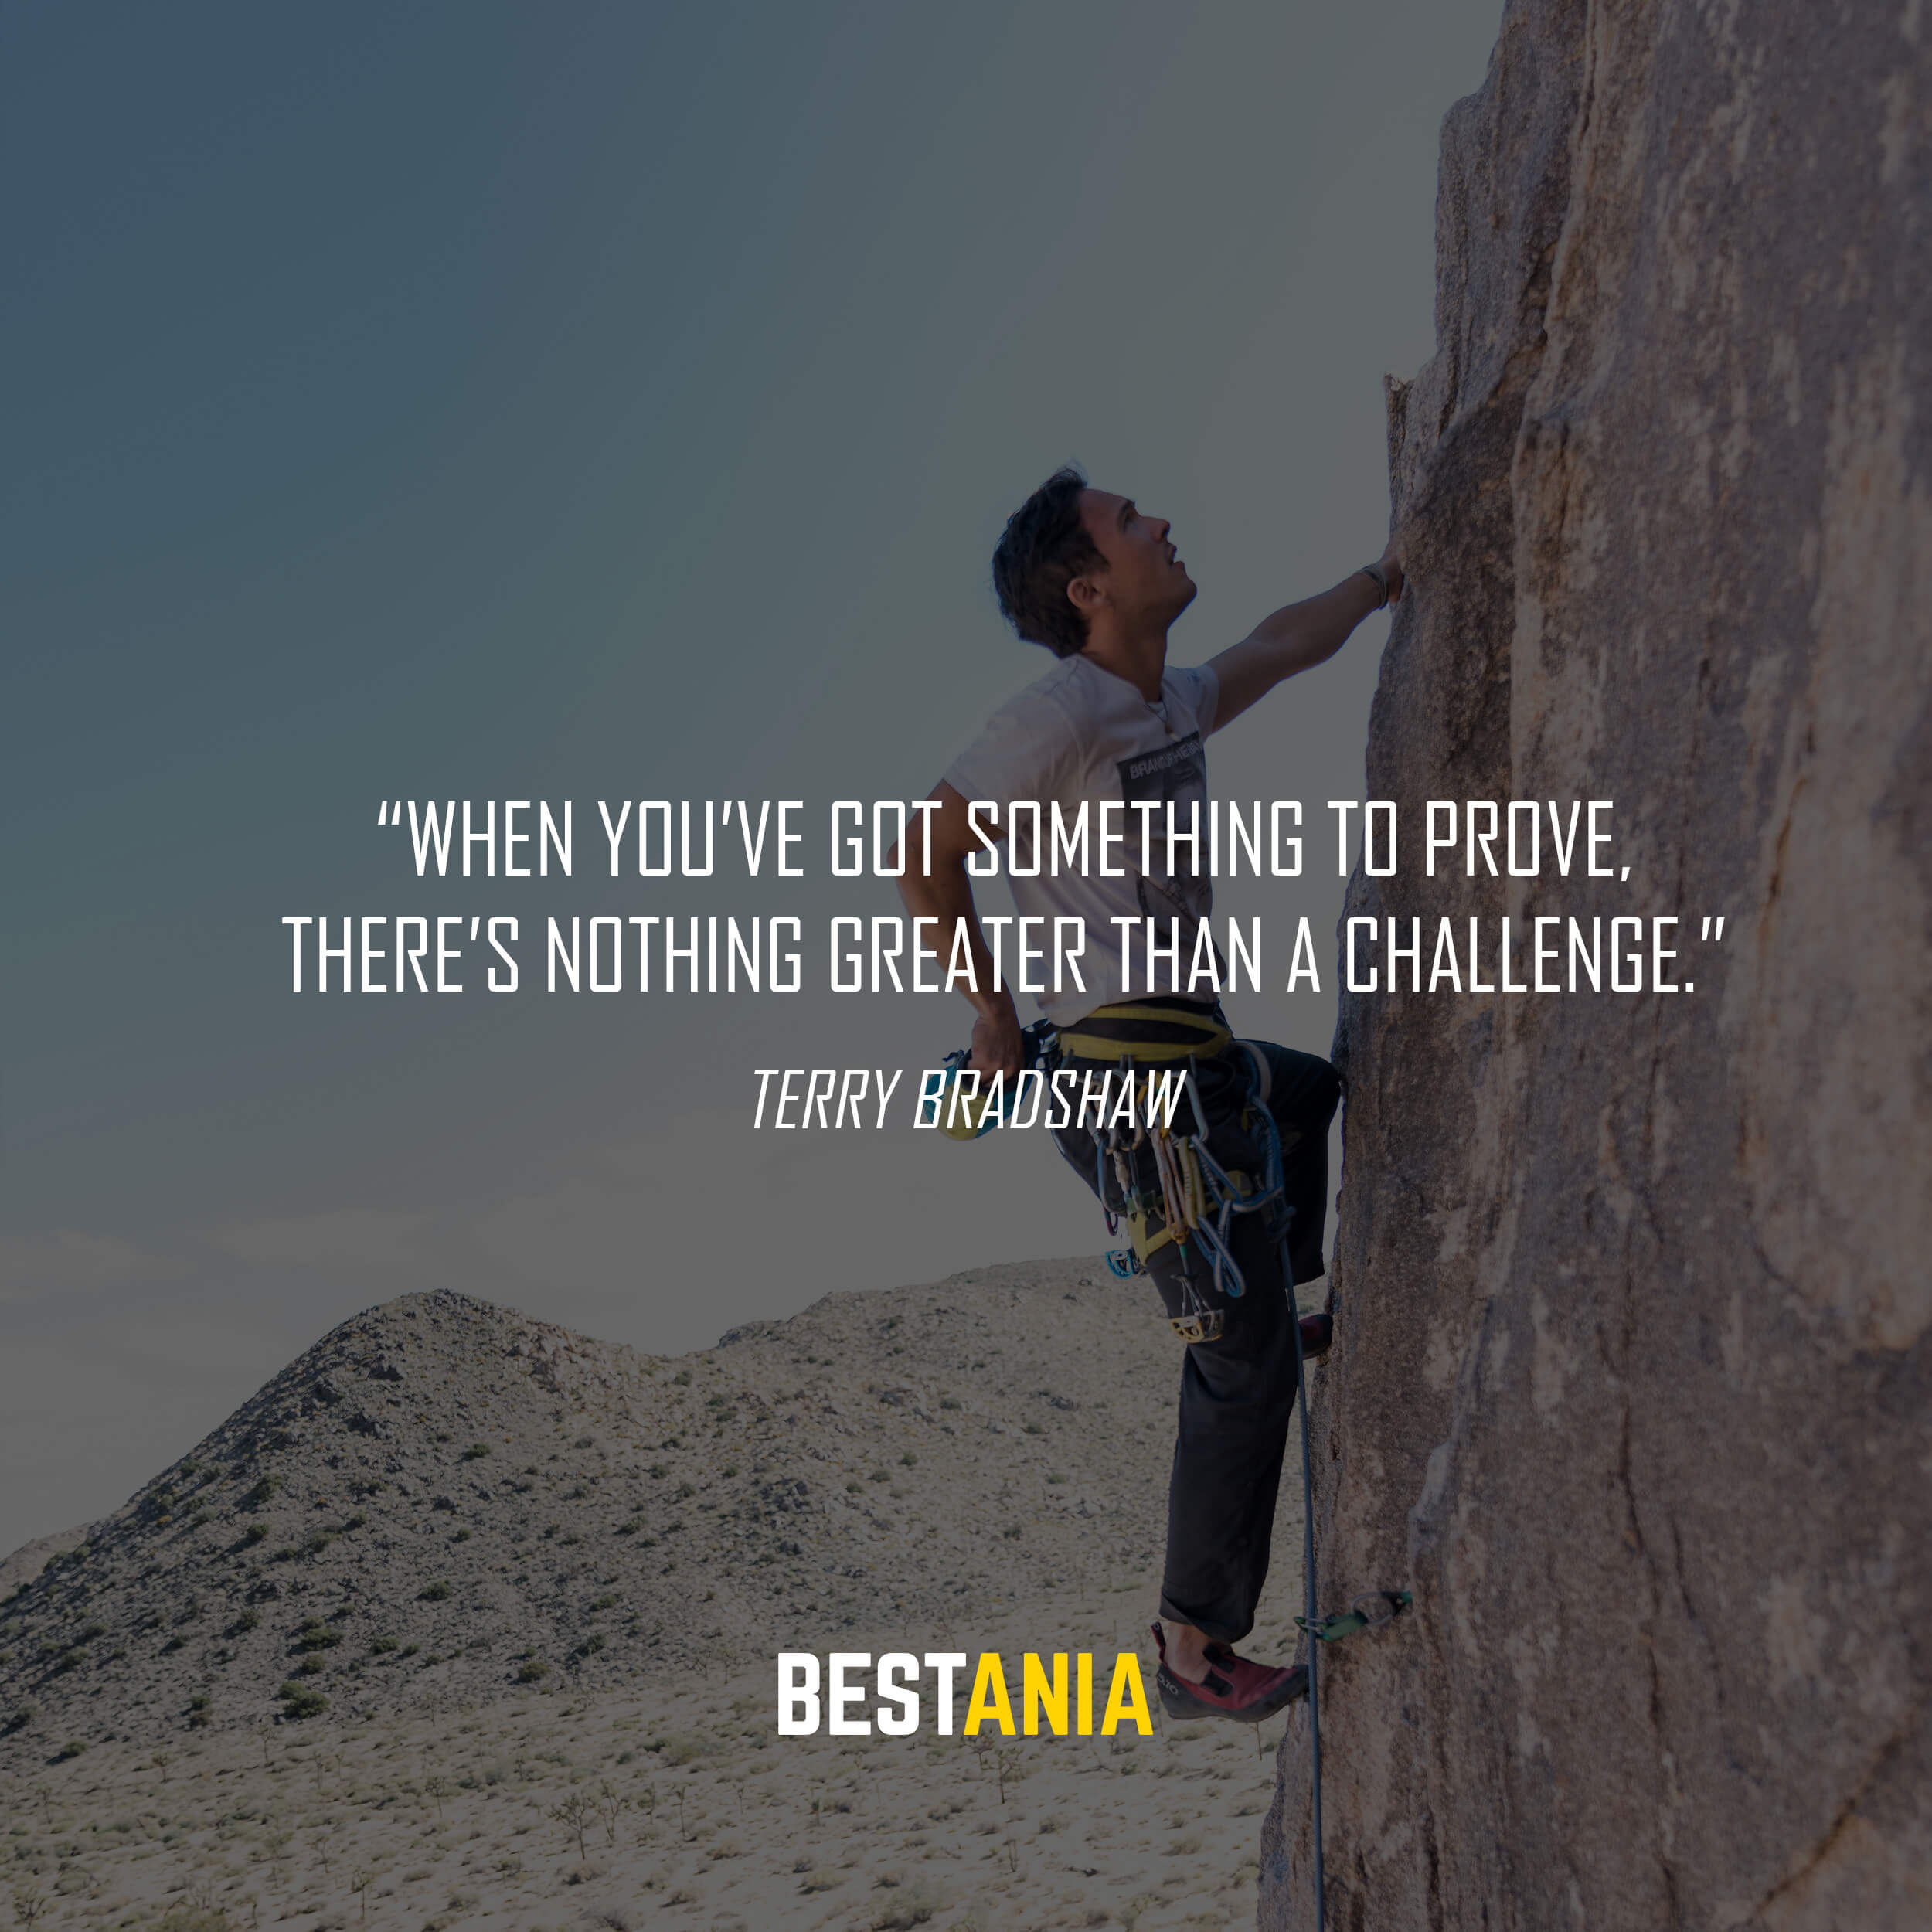 """When you've got something to prove, there's nothing greater than a challenge."" – Terry Bradshaw"